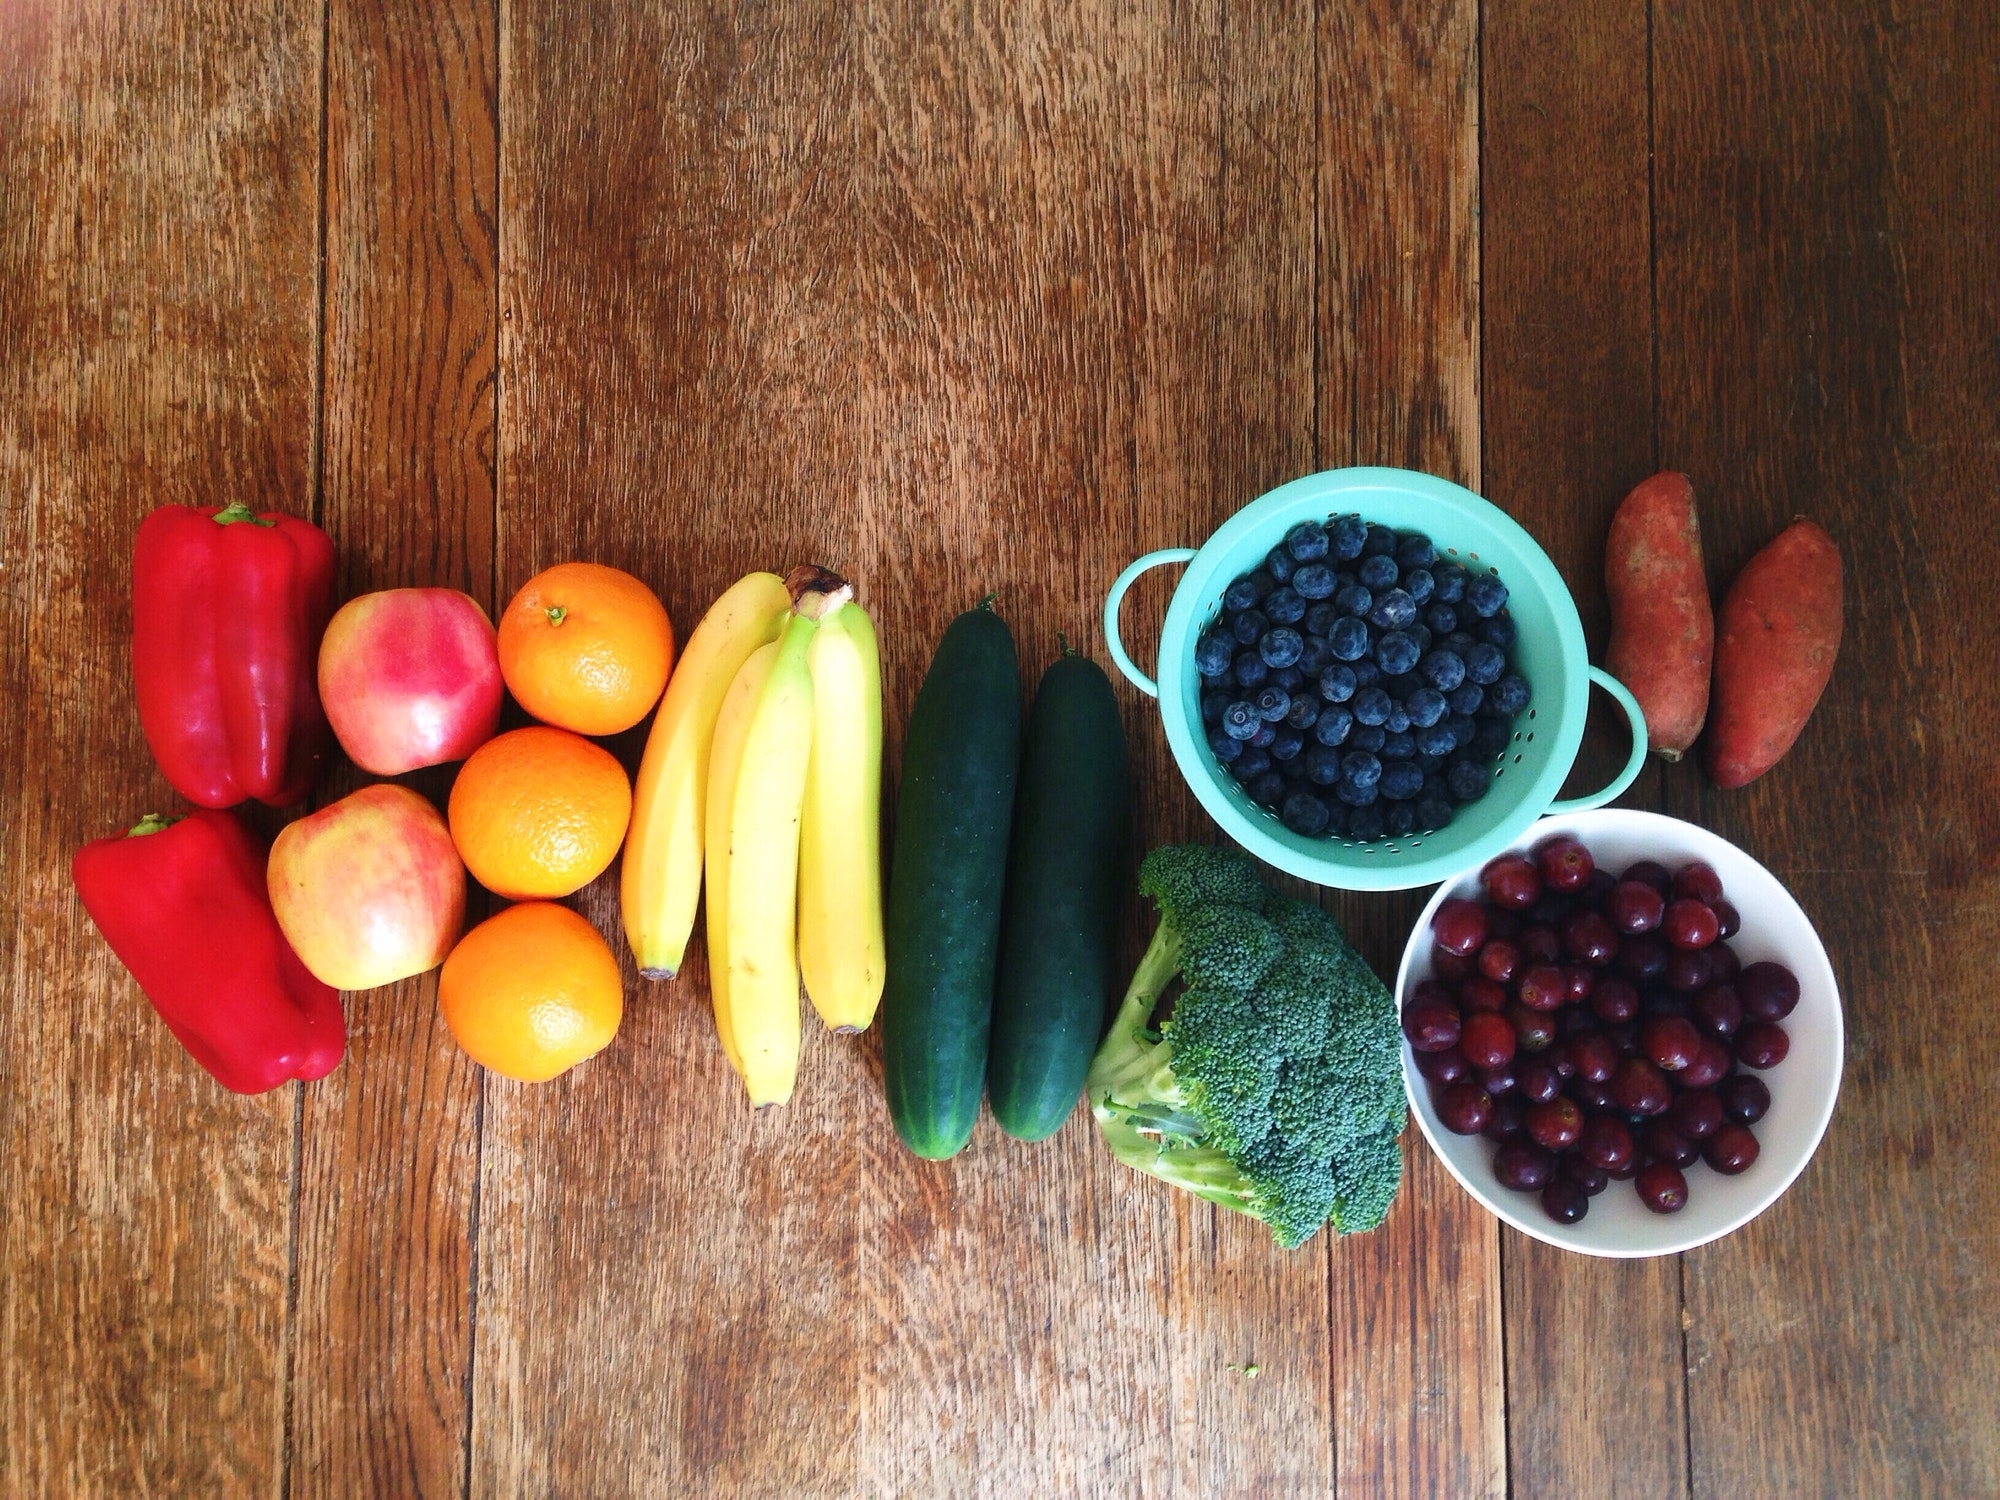 Rainbow of fruits and vegetables on a wooden table